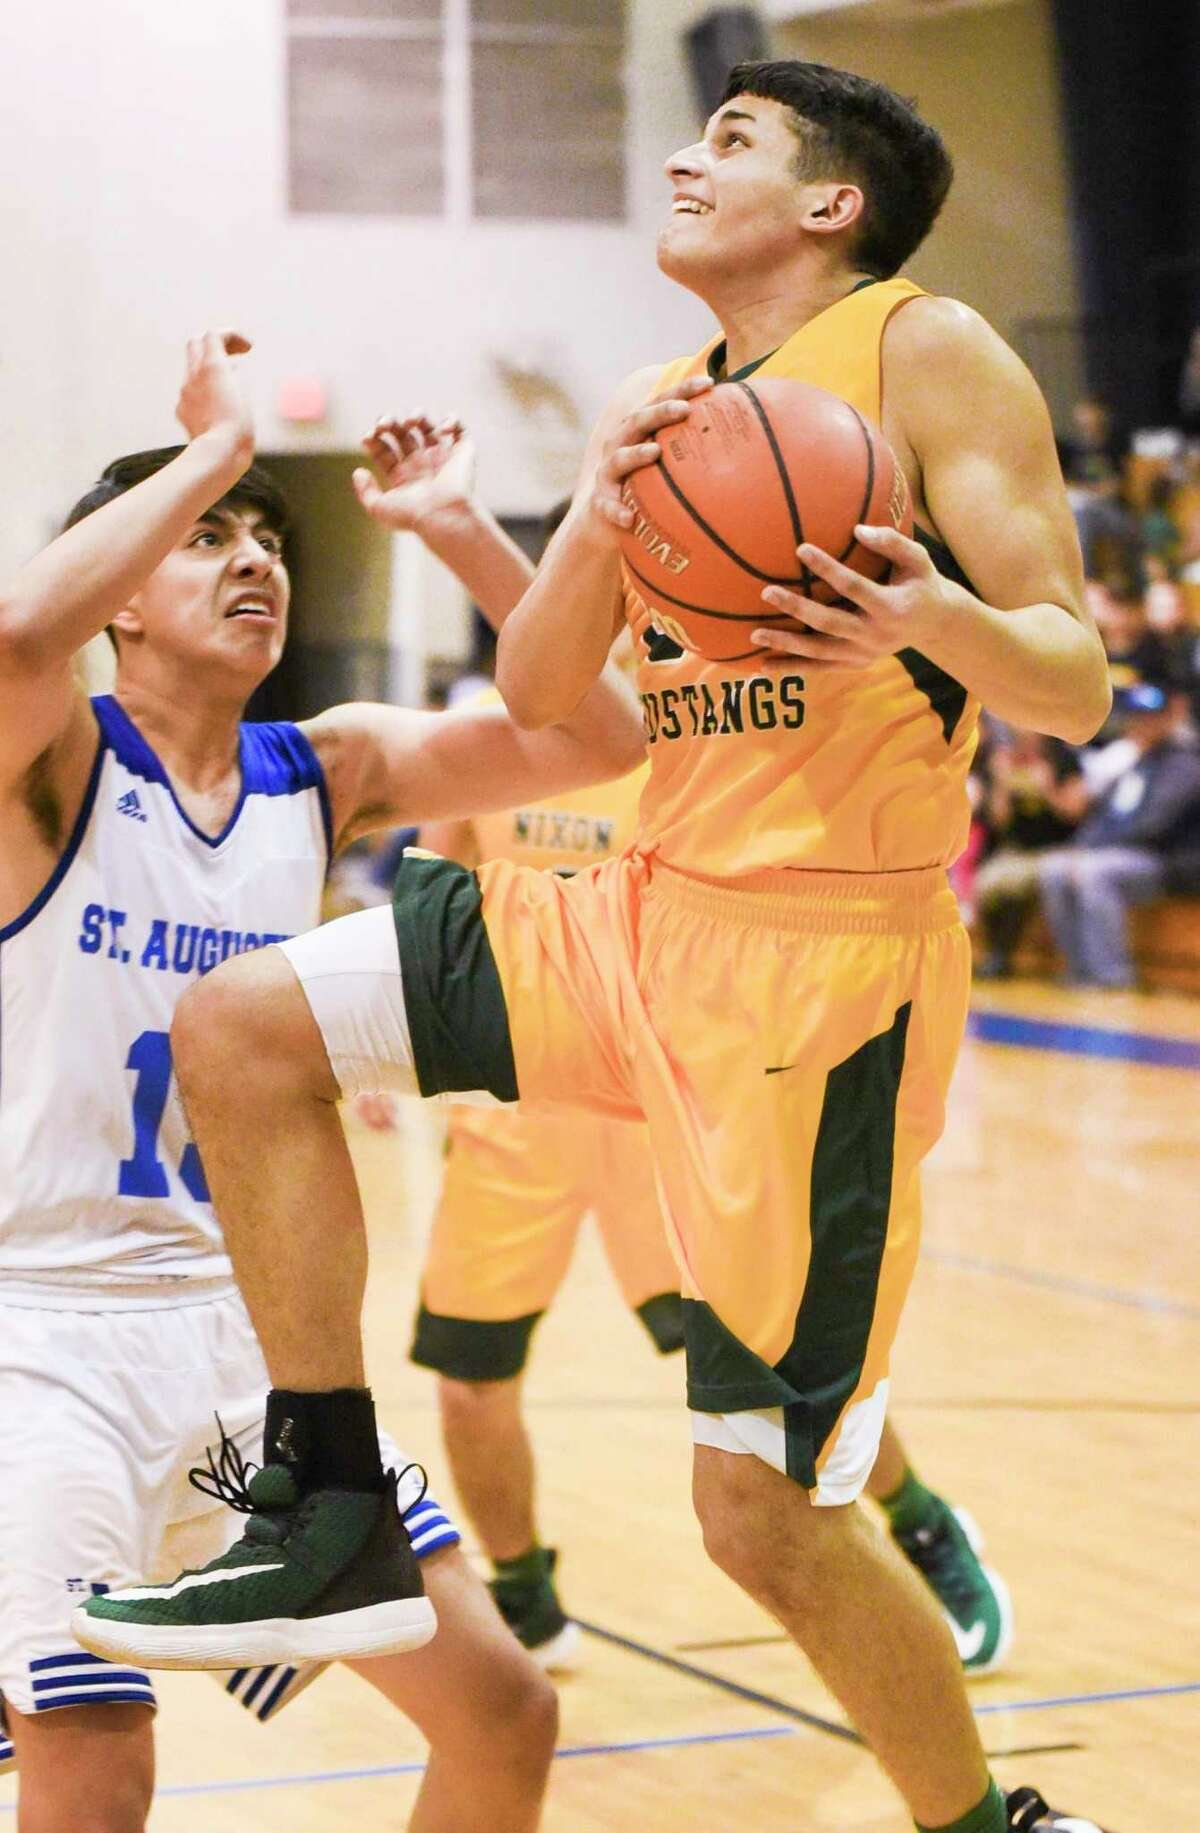 The Texas Association of Basketball Coaches and UIL expect the high school basketball season to start on time.